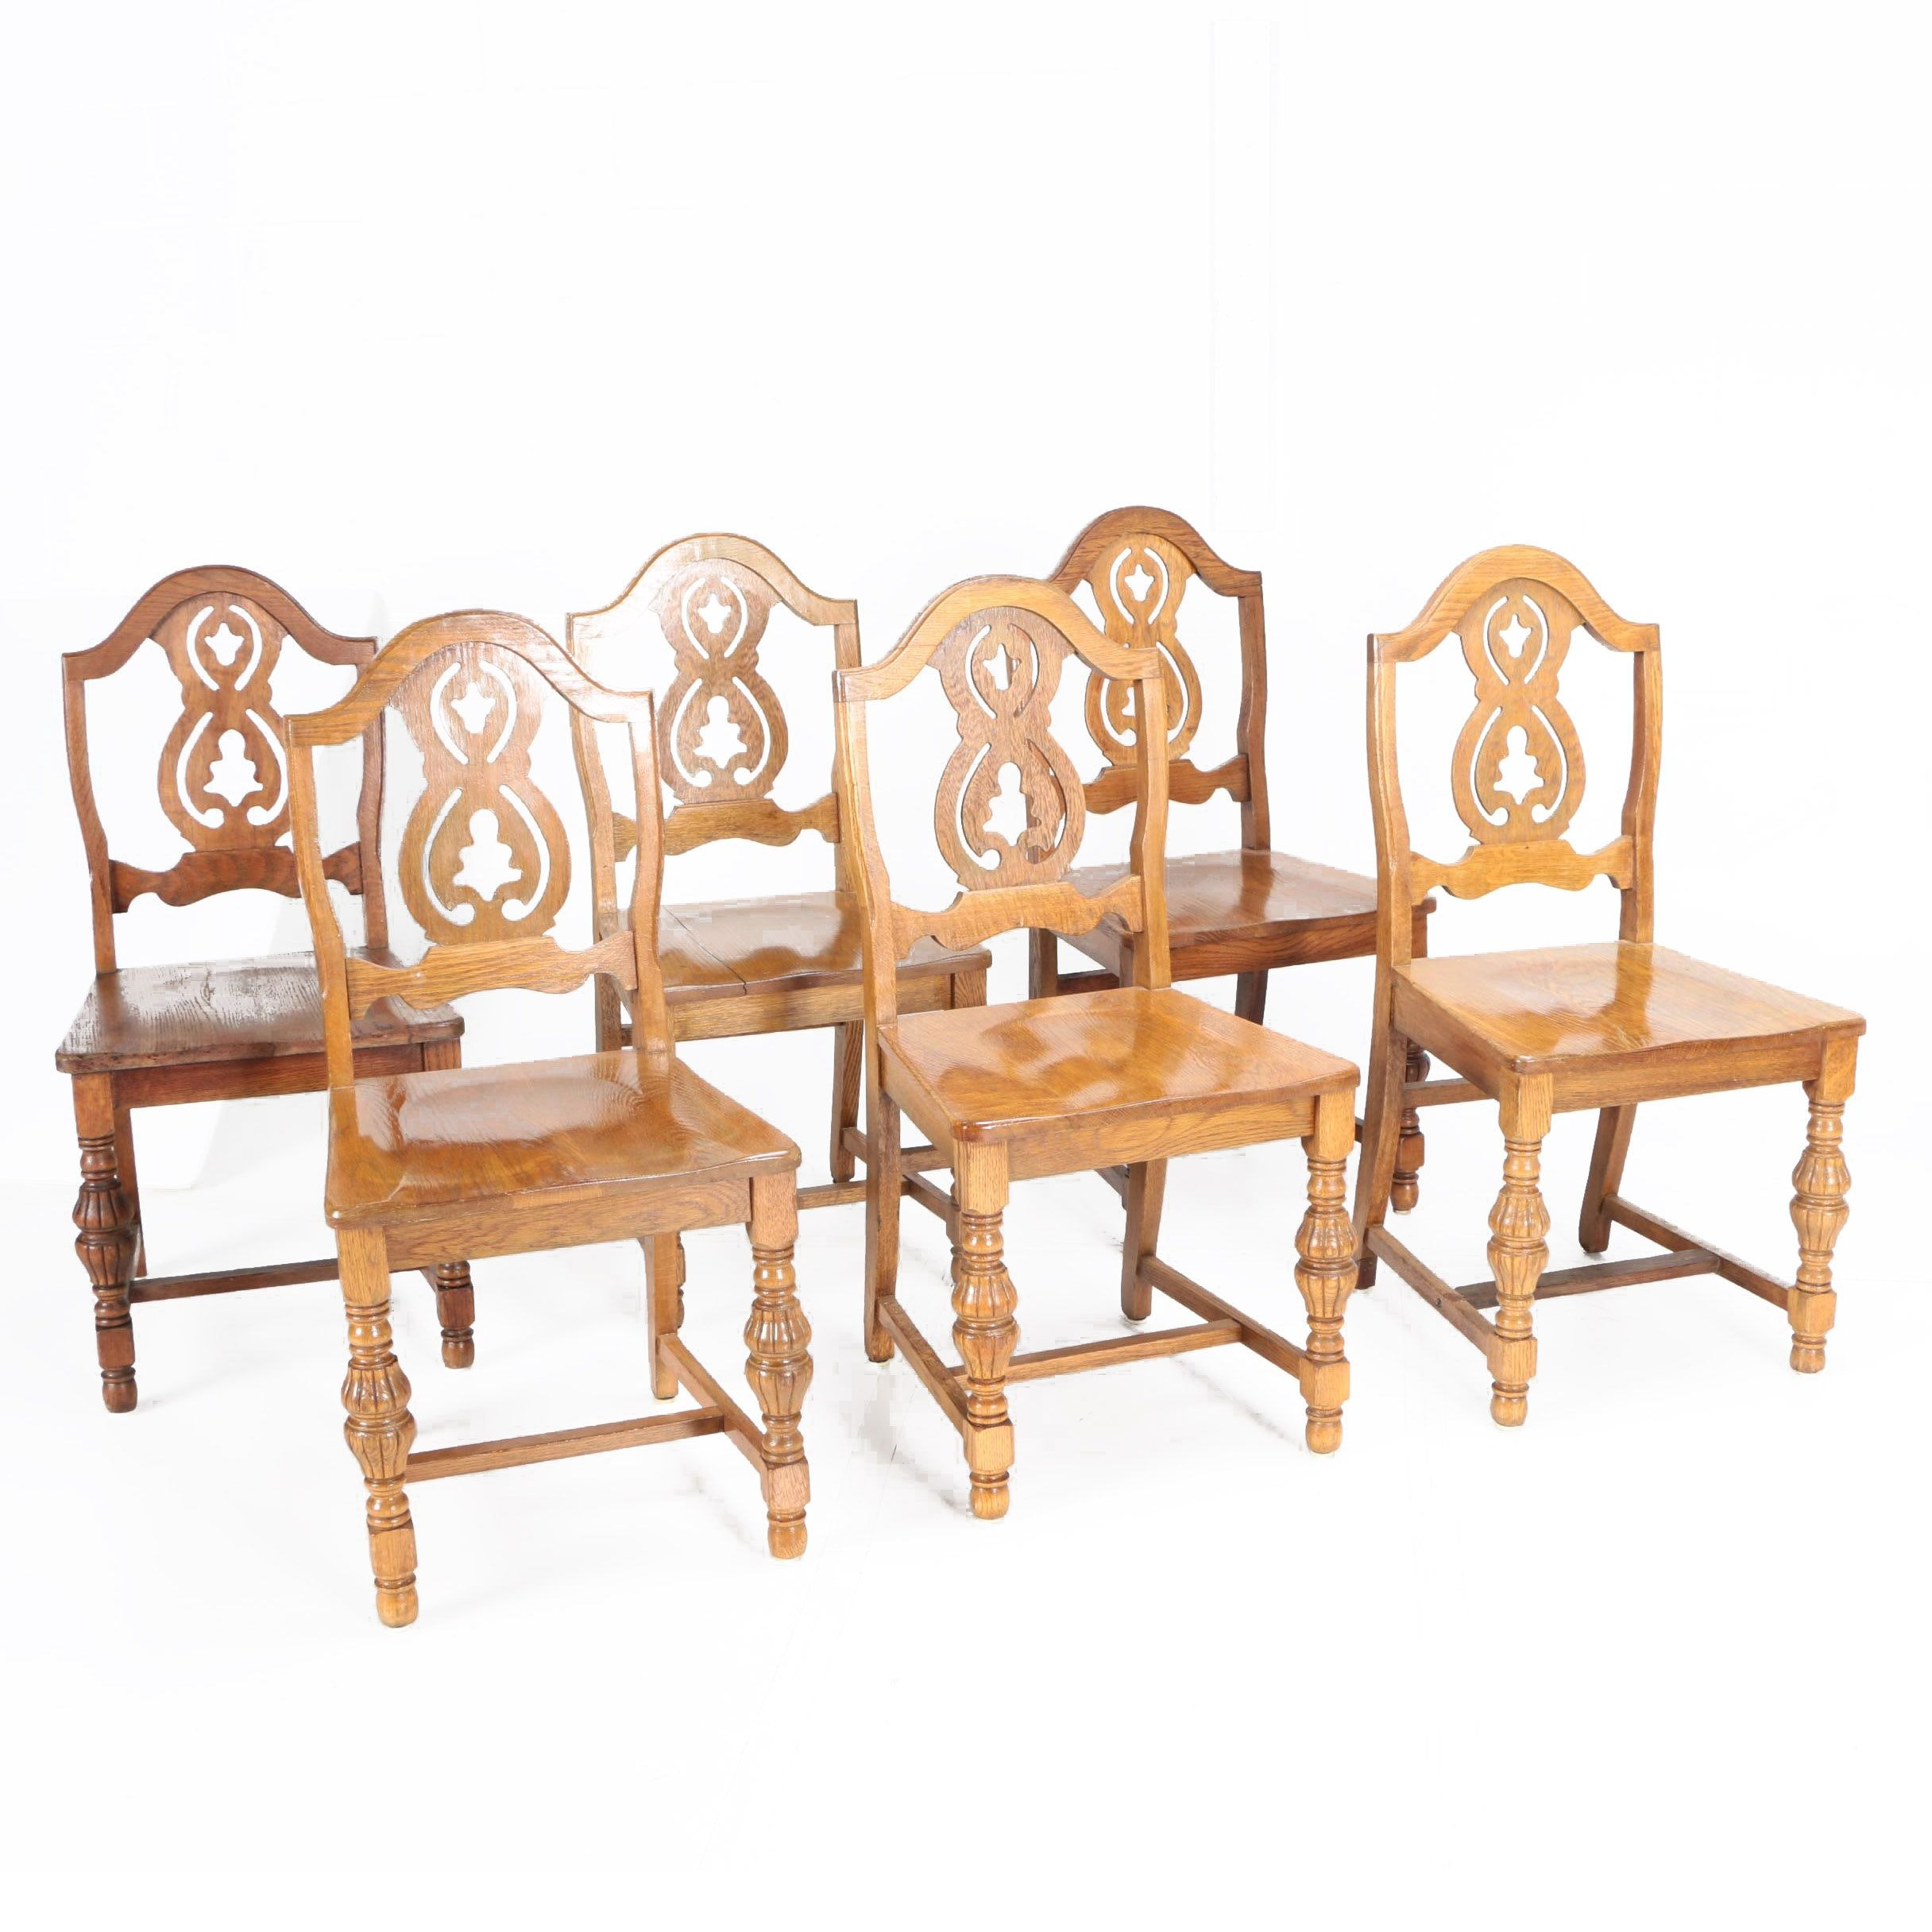 Spanish Revival Style Oak Pierced Splat Dining Chairs